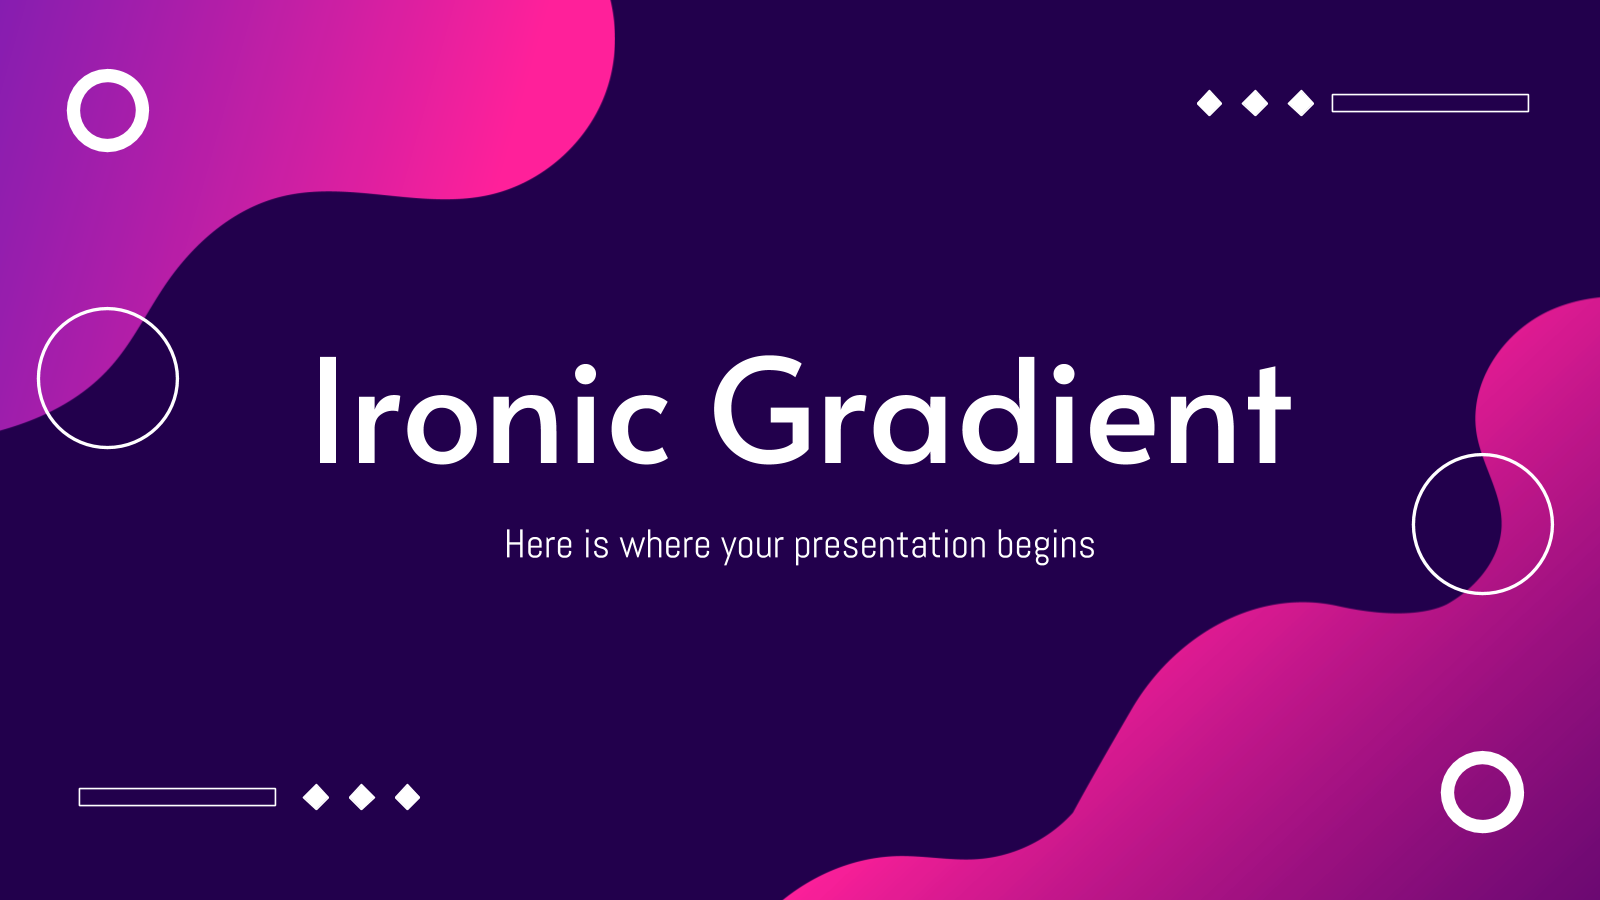 Ironic Gradient presentation template